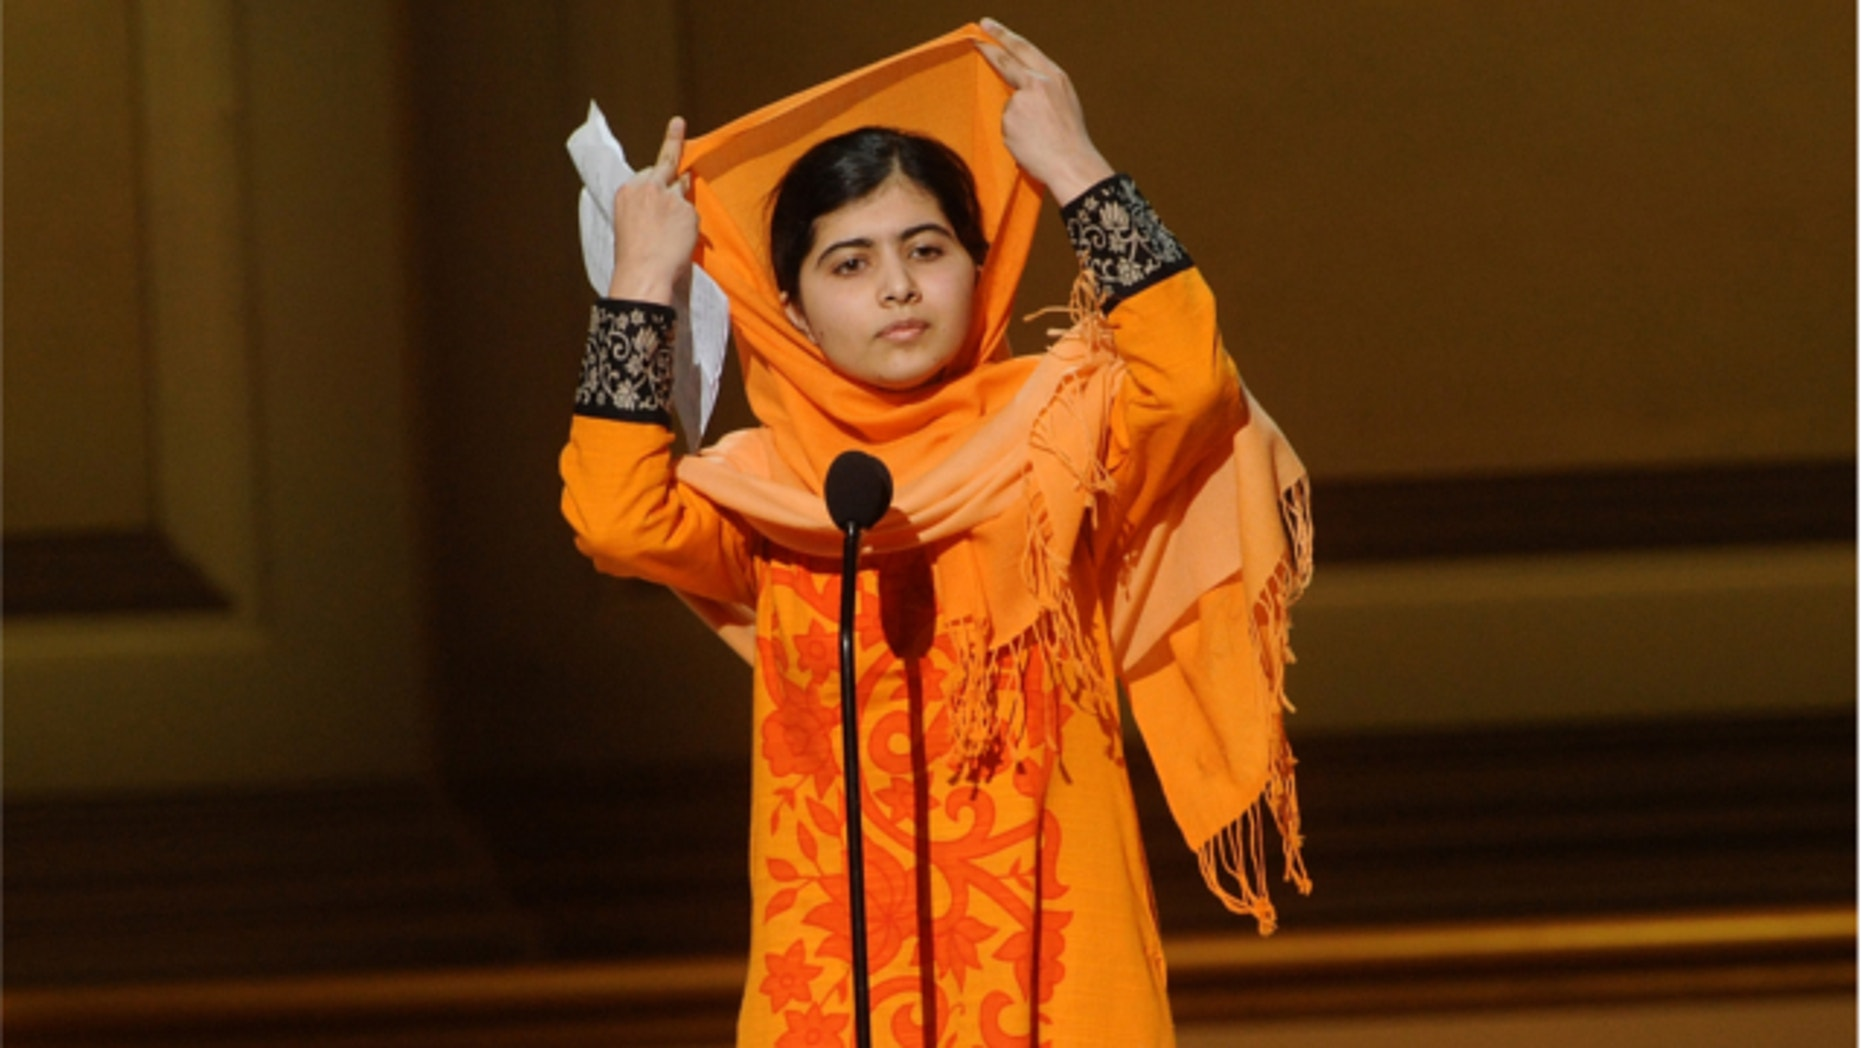 Nov. 11, 2013: Education activist Malala Yousafzai accepts The Women of the Year Fund Honoree Award on stage at the 2013 Glamour Women of the Year Awards in New York.